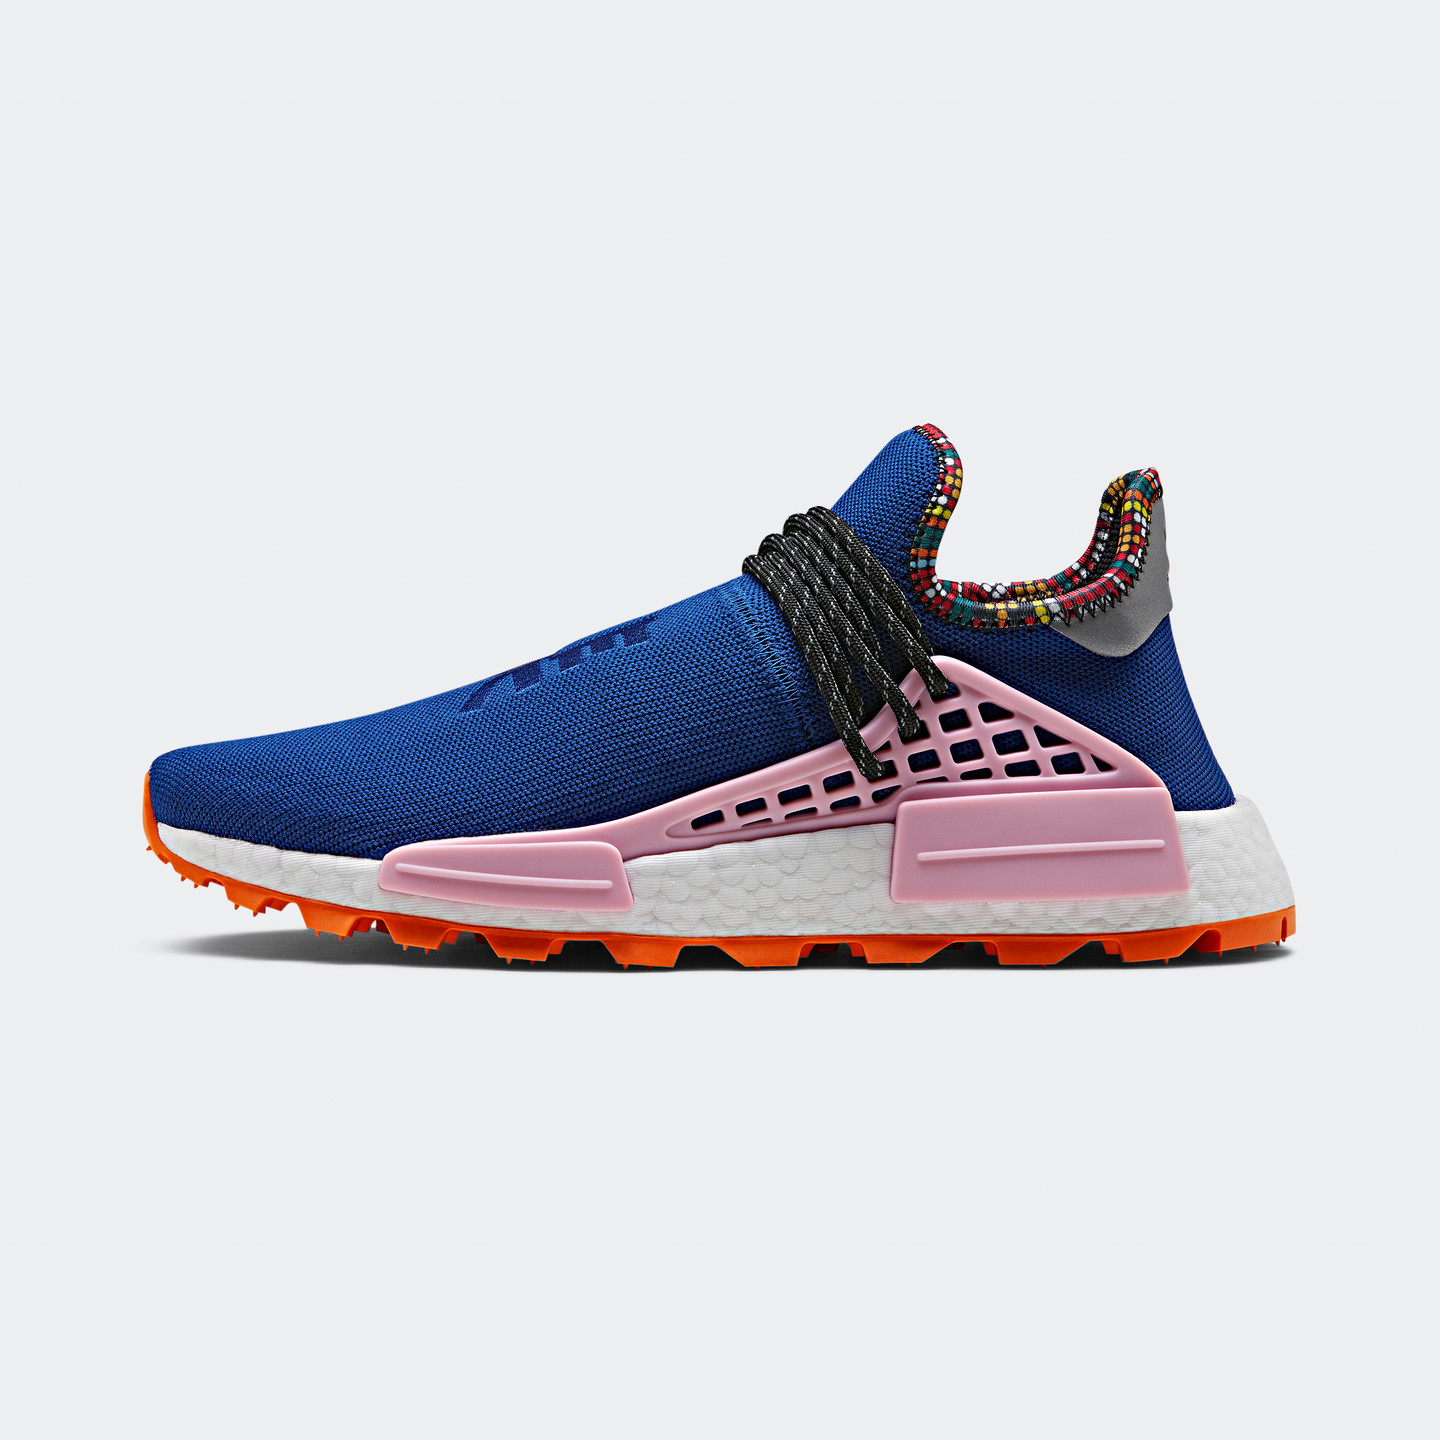 Adidas Pharrell Williams 'Solar HU' NMD Power Blue / Light Pink / Orange EE7579